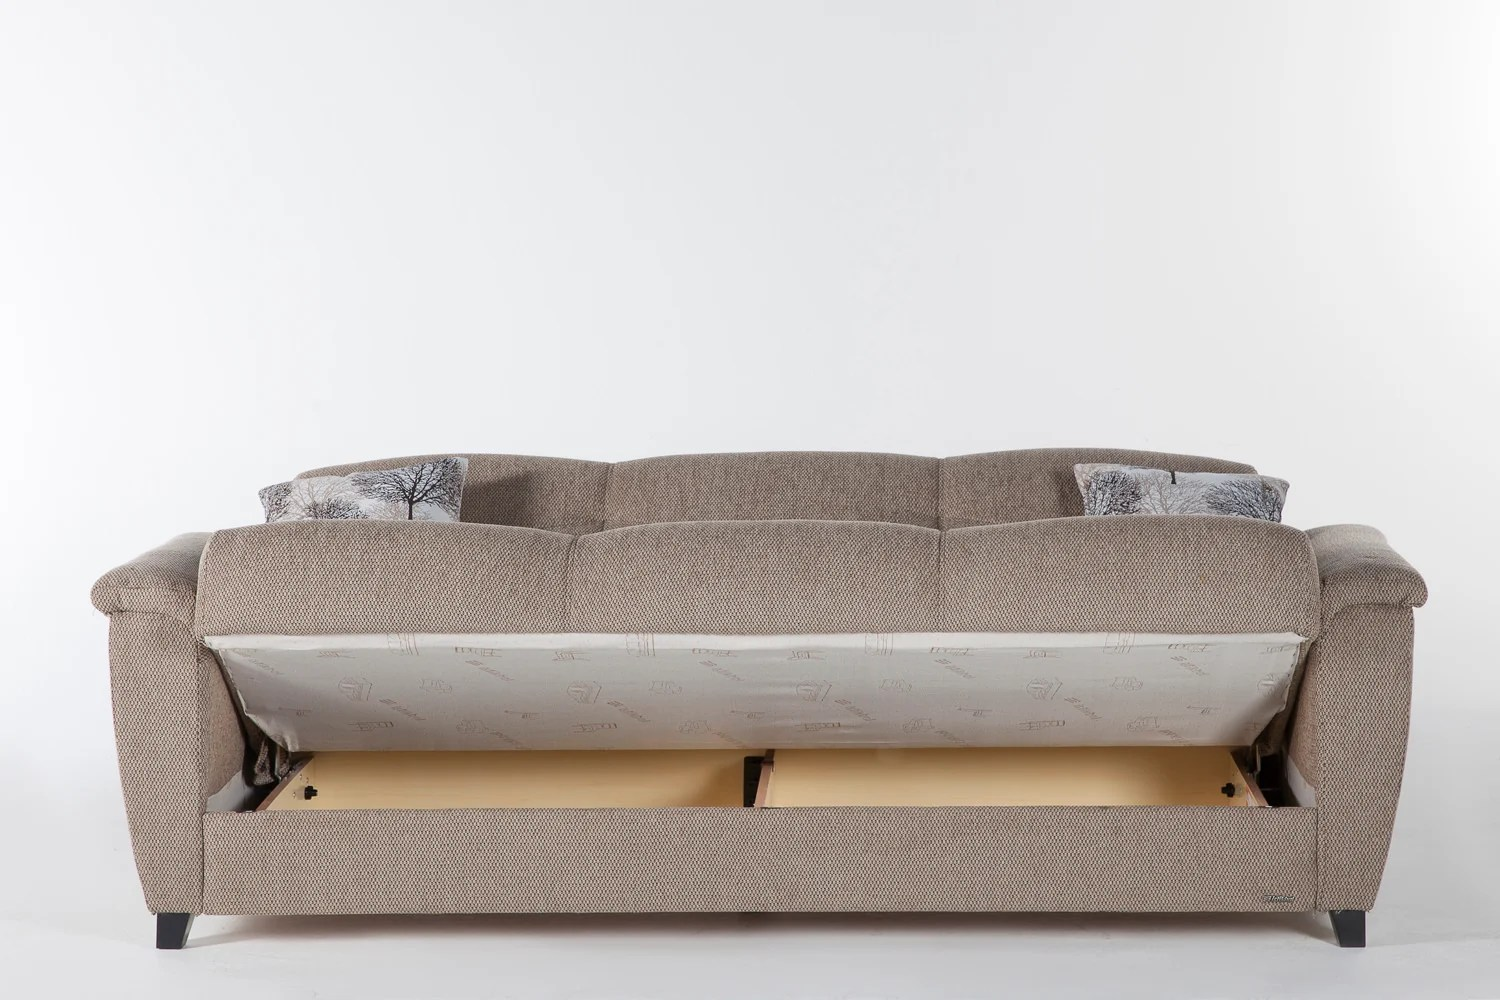 aspen convertible sectional storage sofa bed unusual garden sofas 276 by jean marie maud cina thesofa